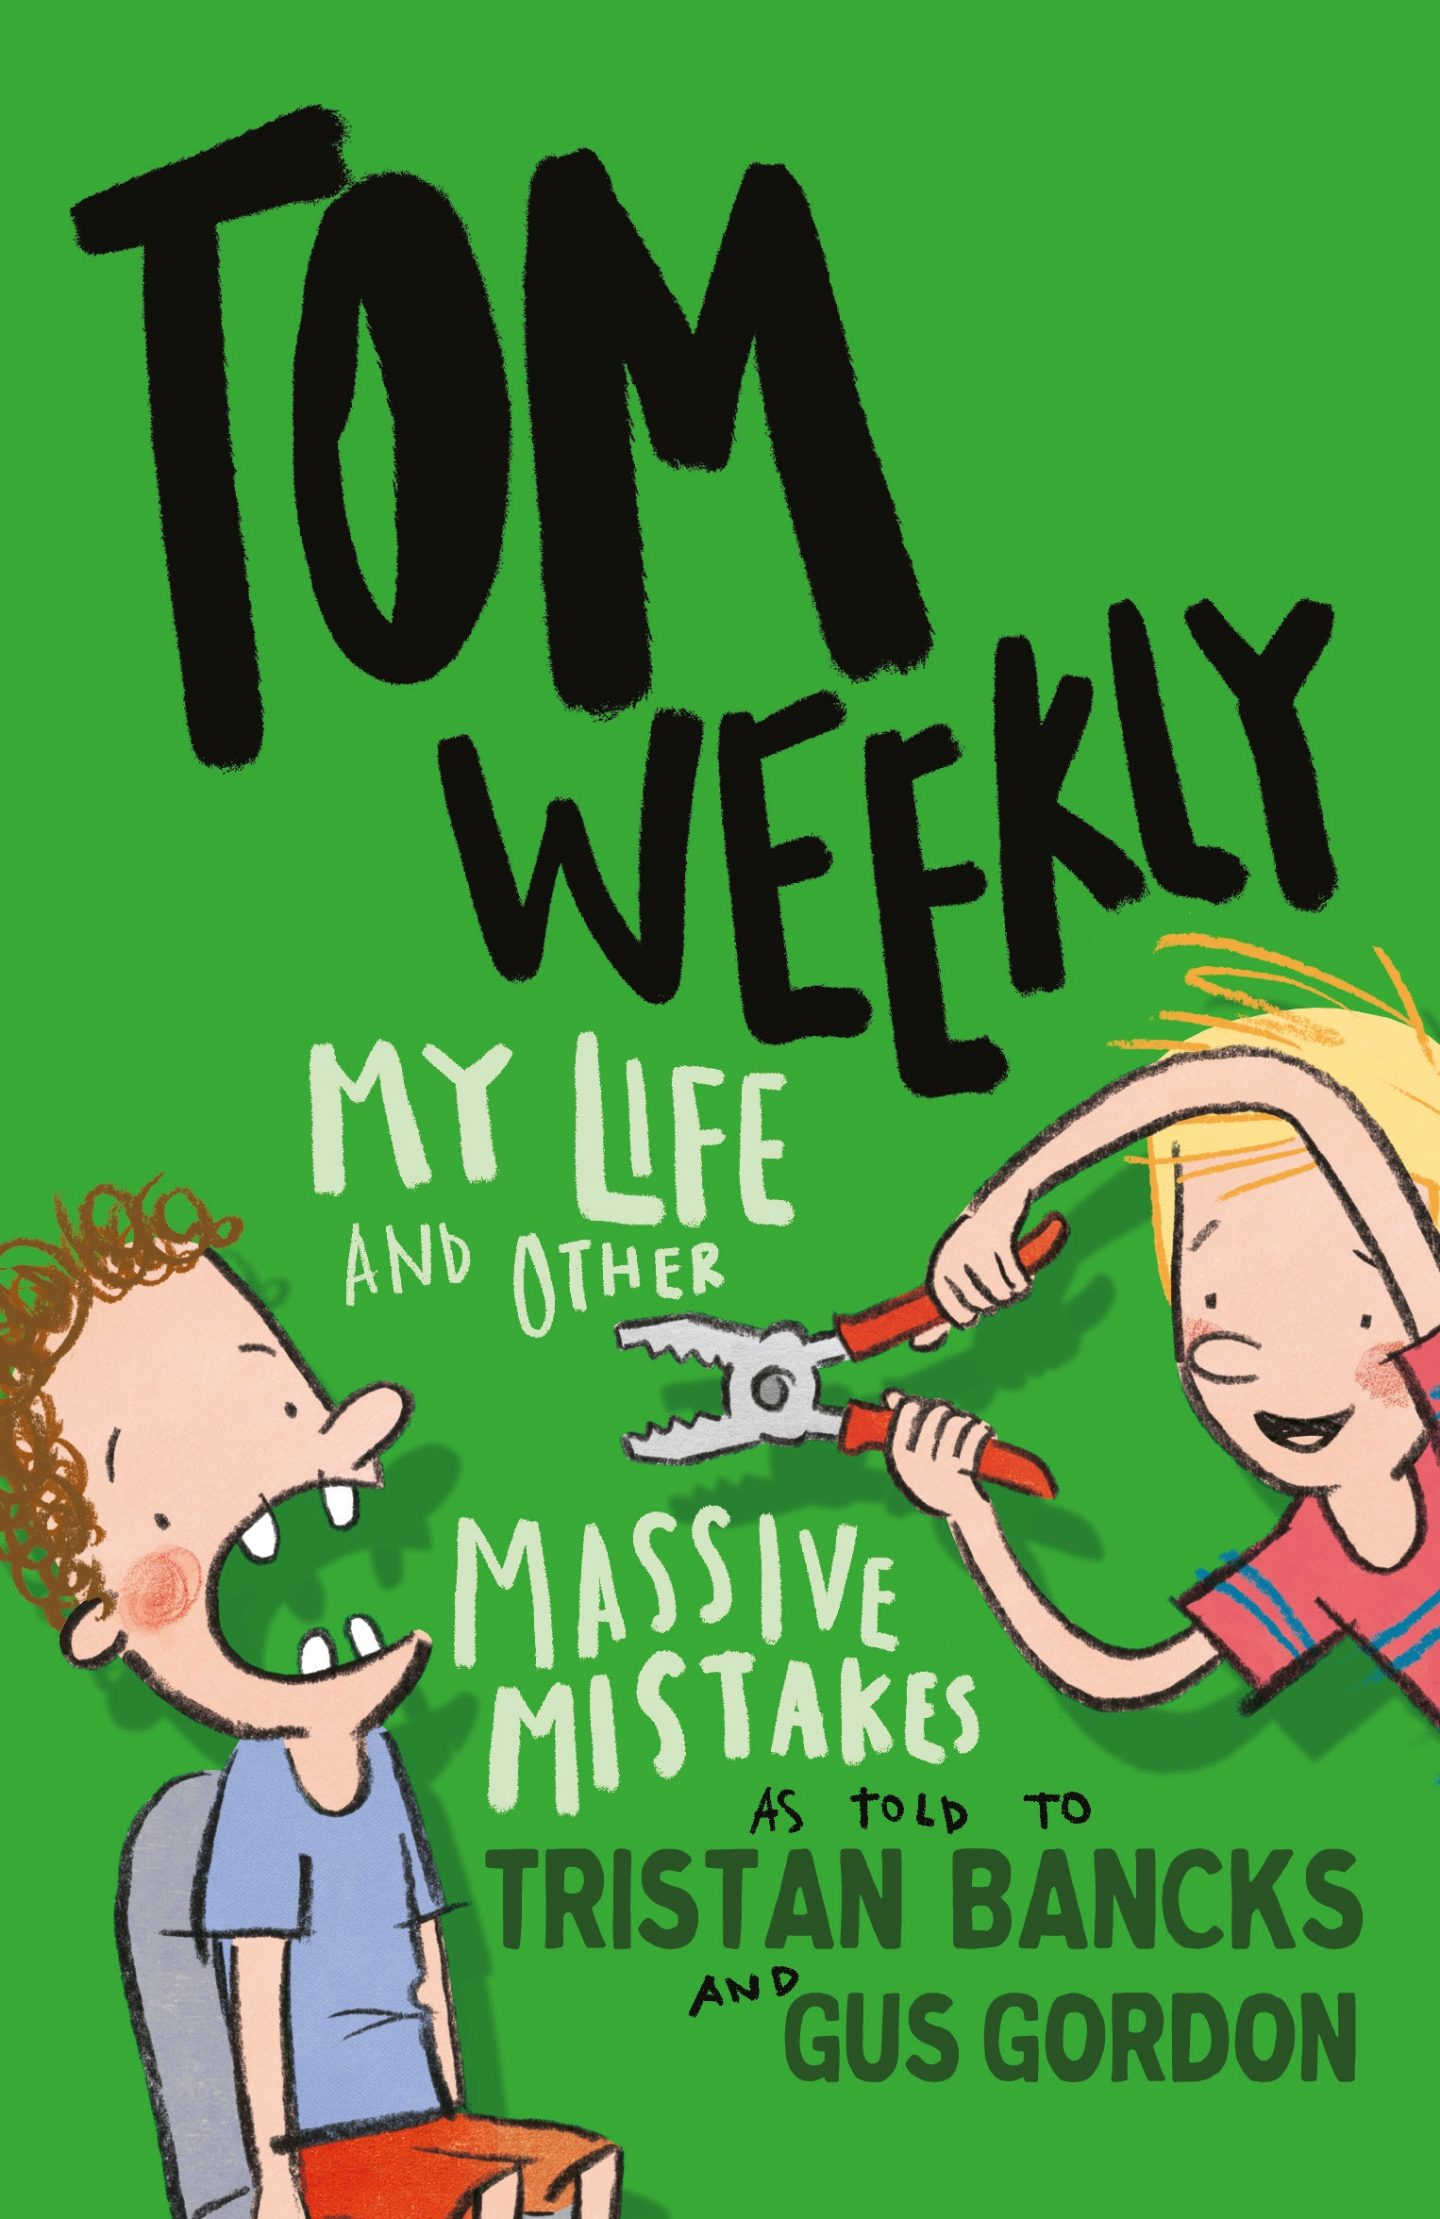 Tom Weekly My Life & Other Massive Mistakes